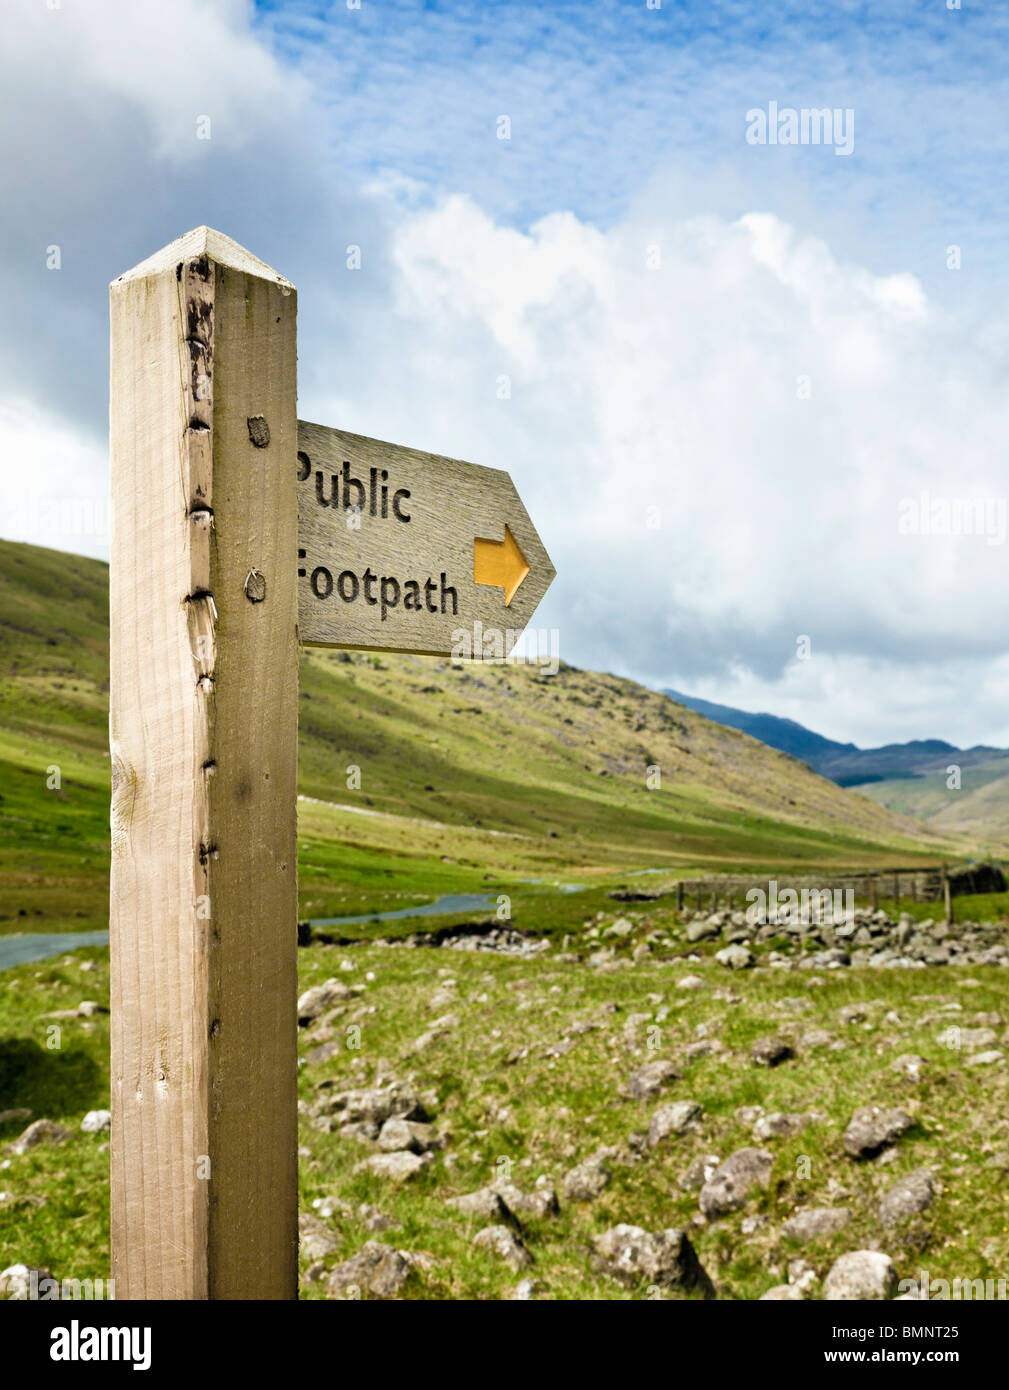 Public footpath wooden signpost in a remote valley in The Lake District England UK - Stock Image